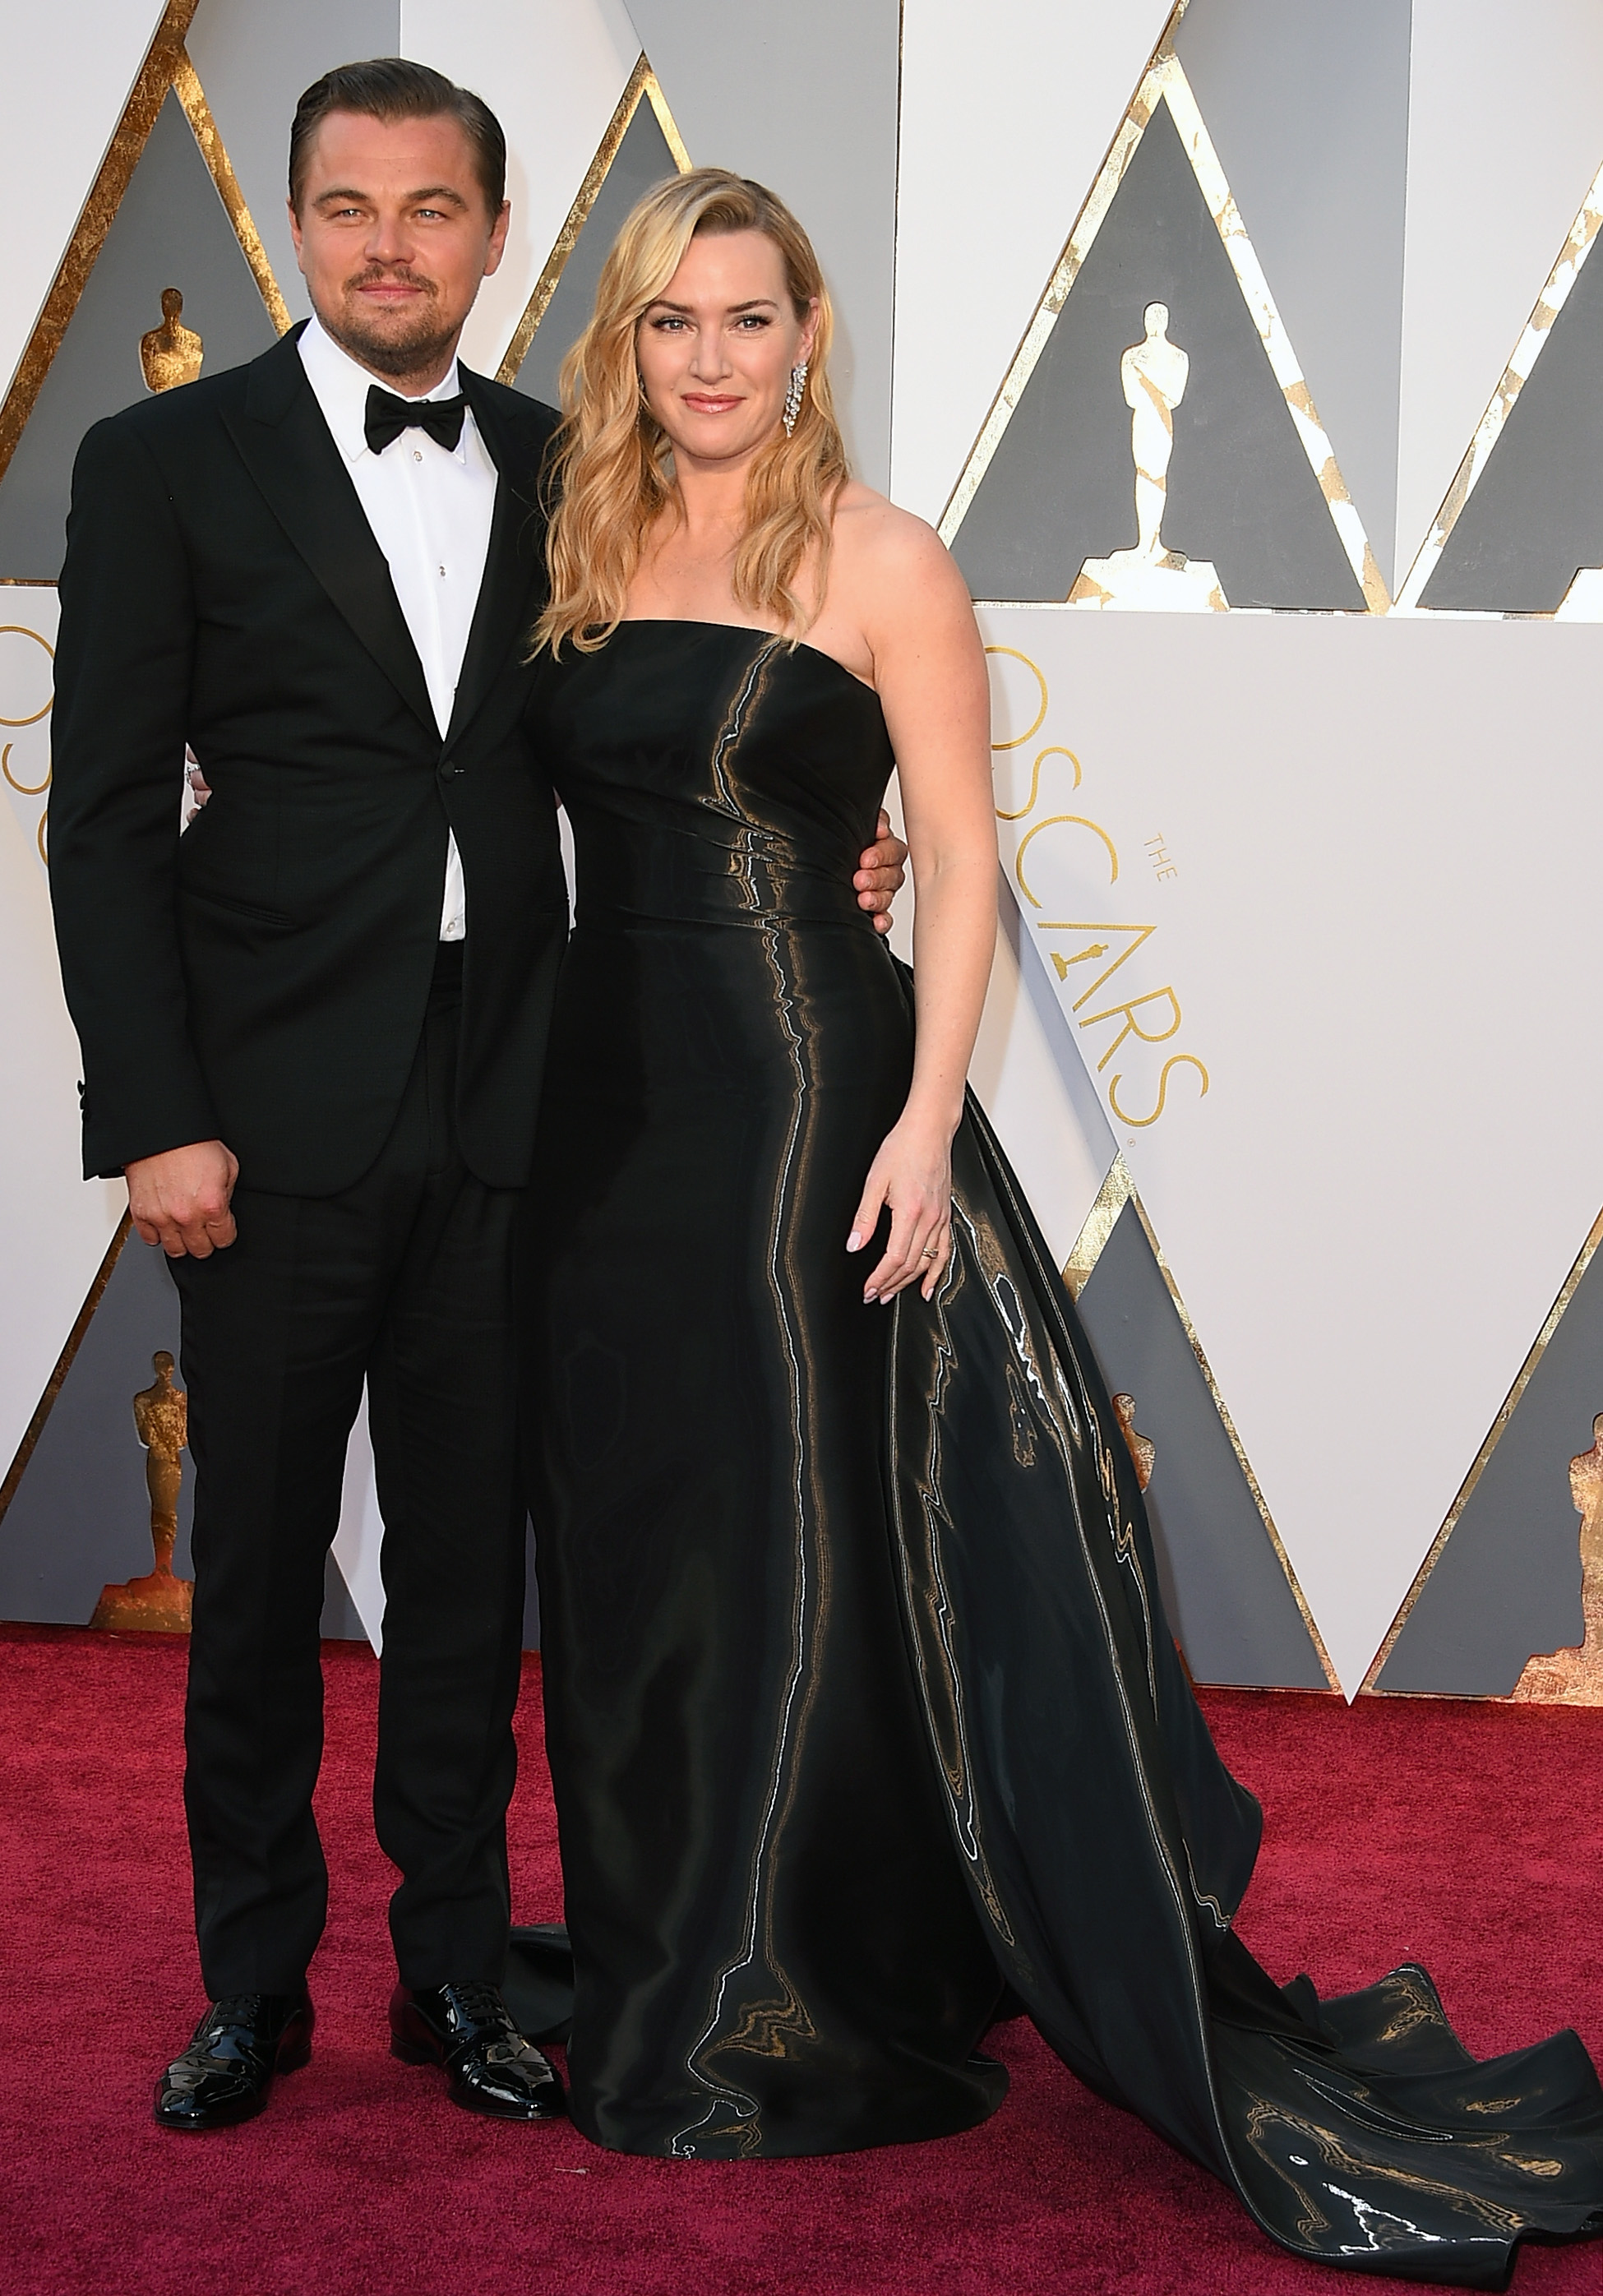 Leonardo DiCaprio and Kate Winslet attend the 88th Annual Academy Awards on Feb. 28, 2016 in Hollywood, Calif.